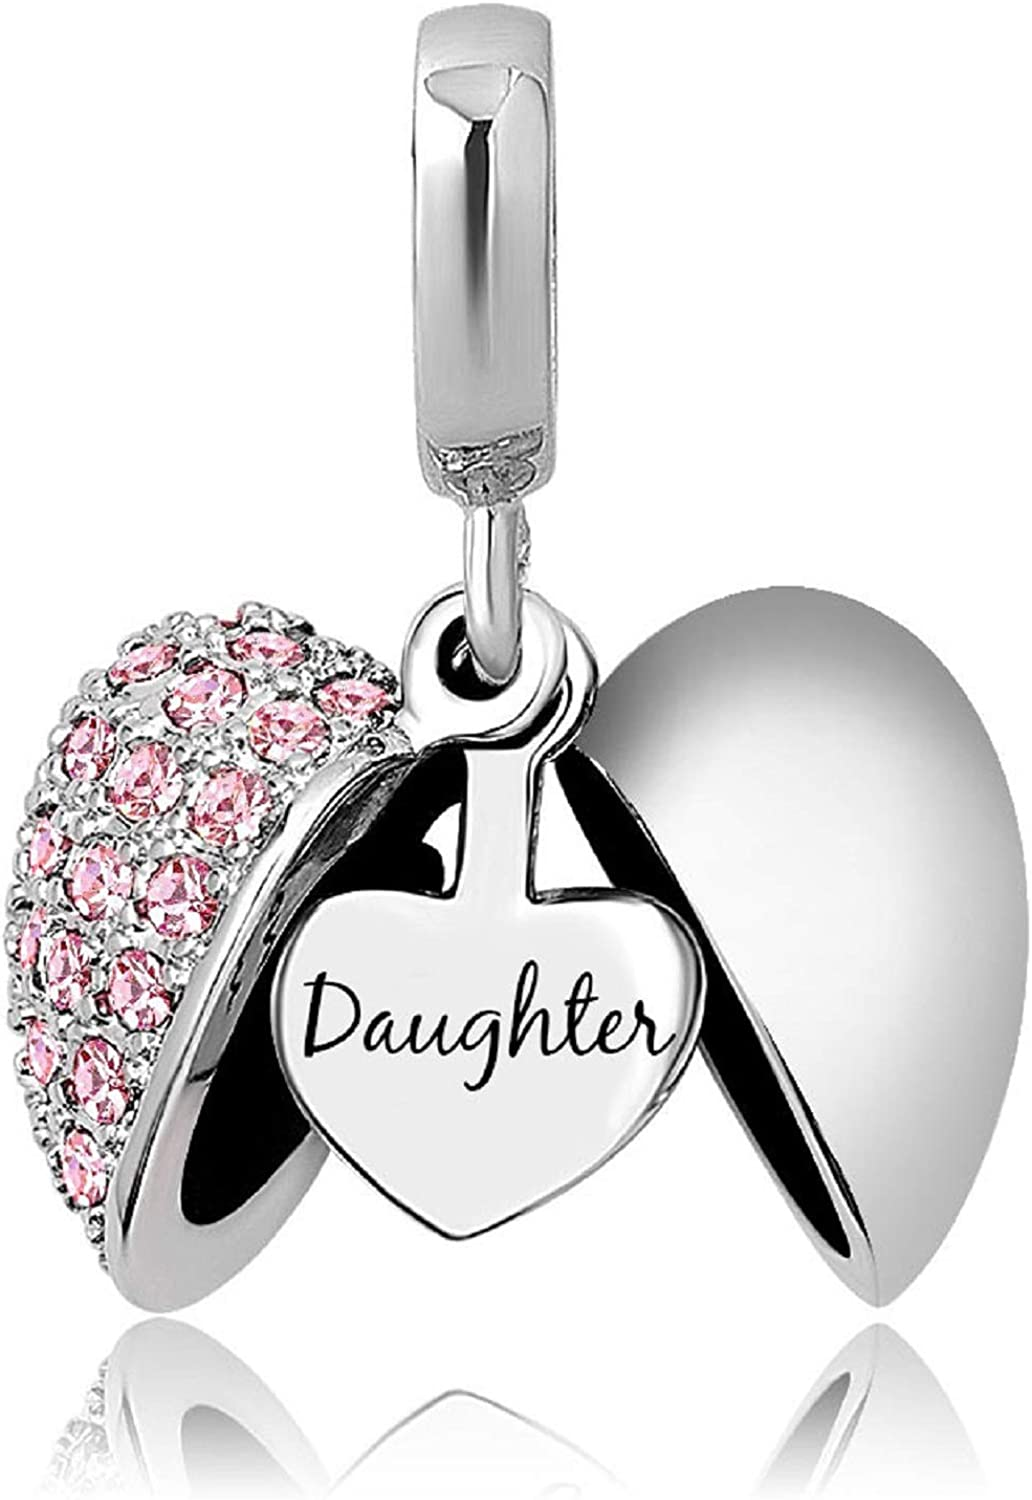 KunBead Daughter Heart I Love You Birthstone Dangle Charms for Bracelets Necklace Birthday Gift for Women Girls